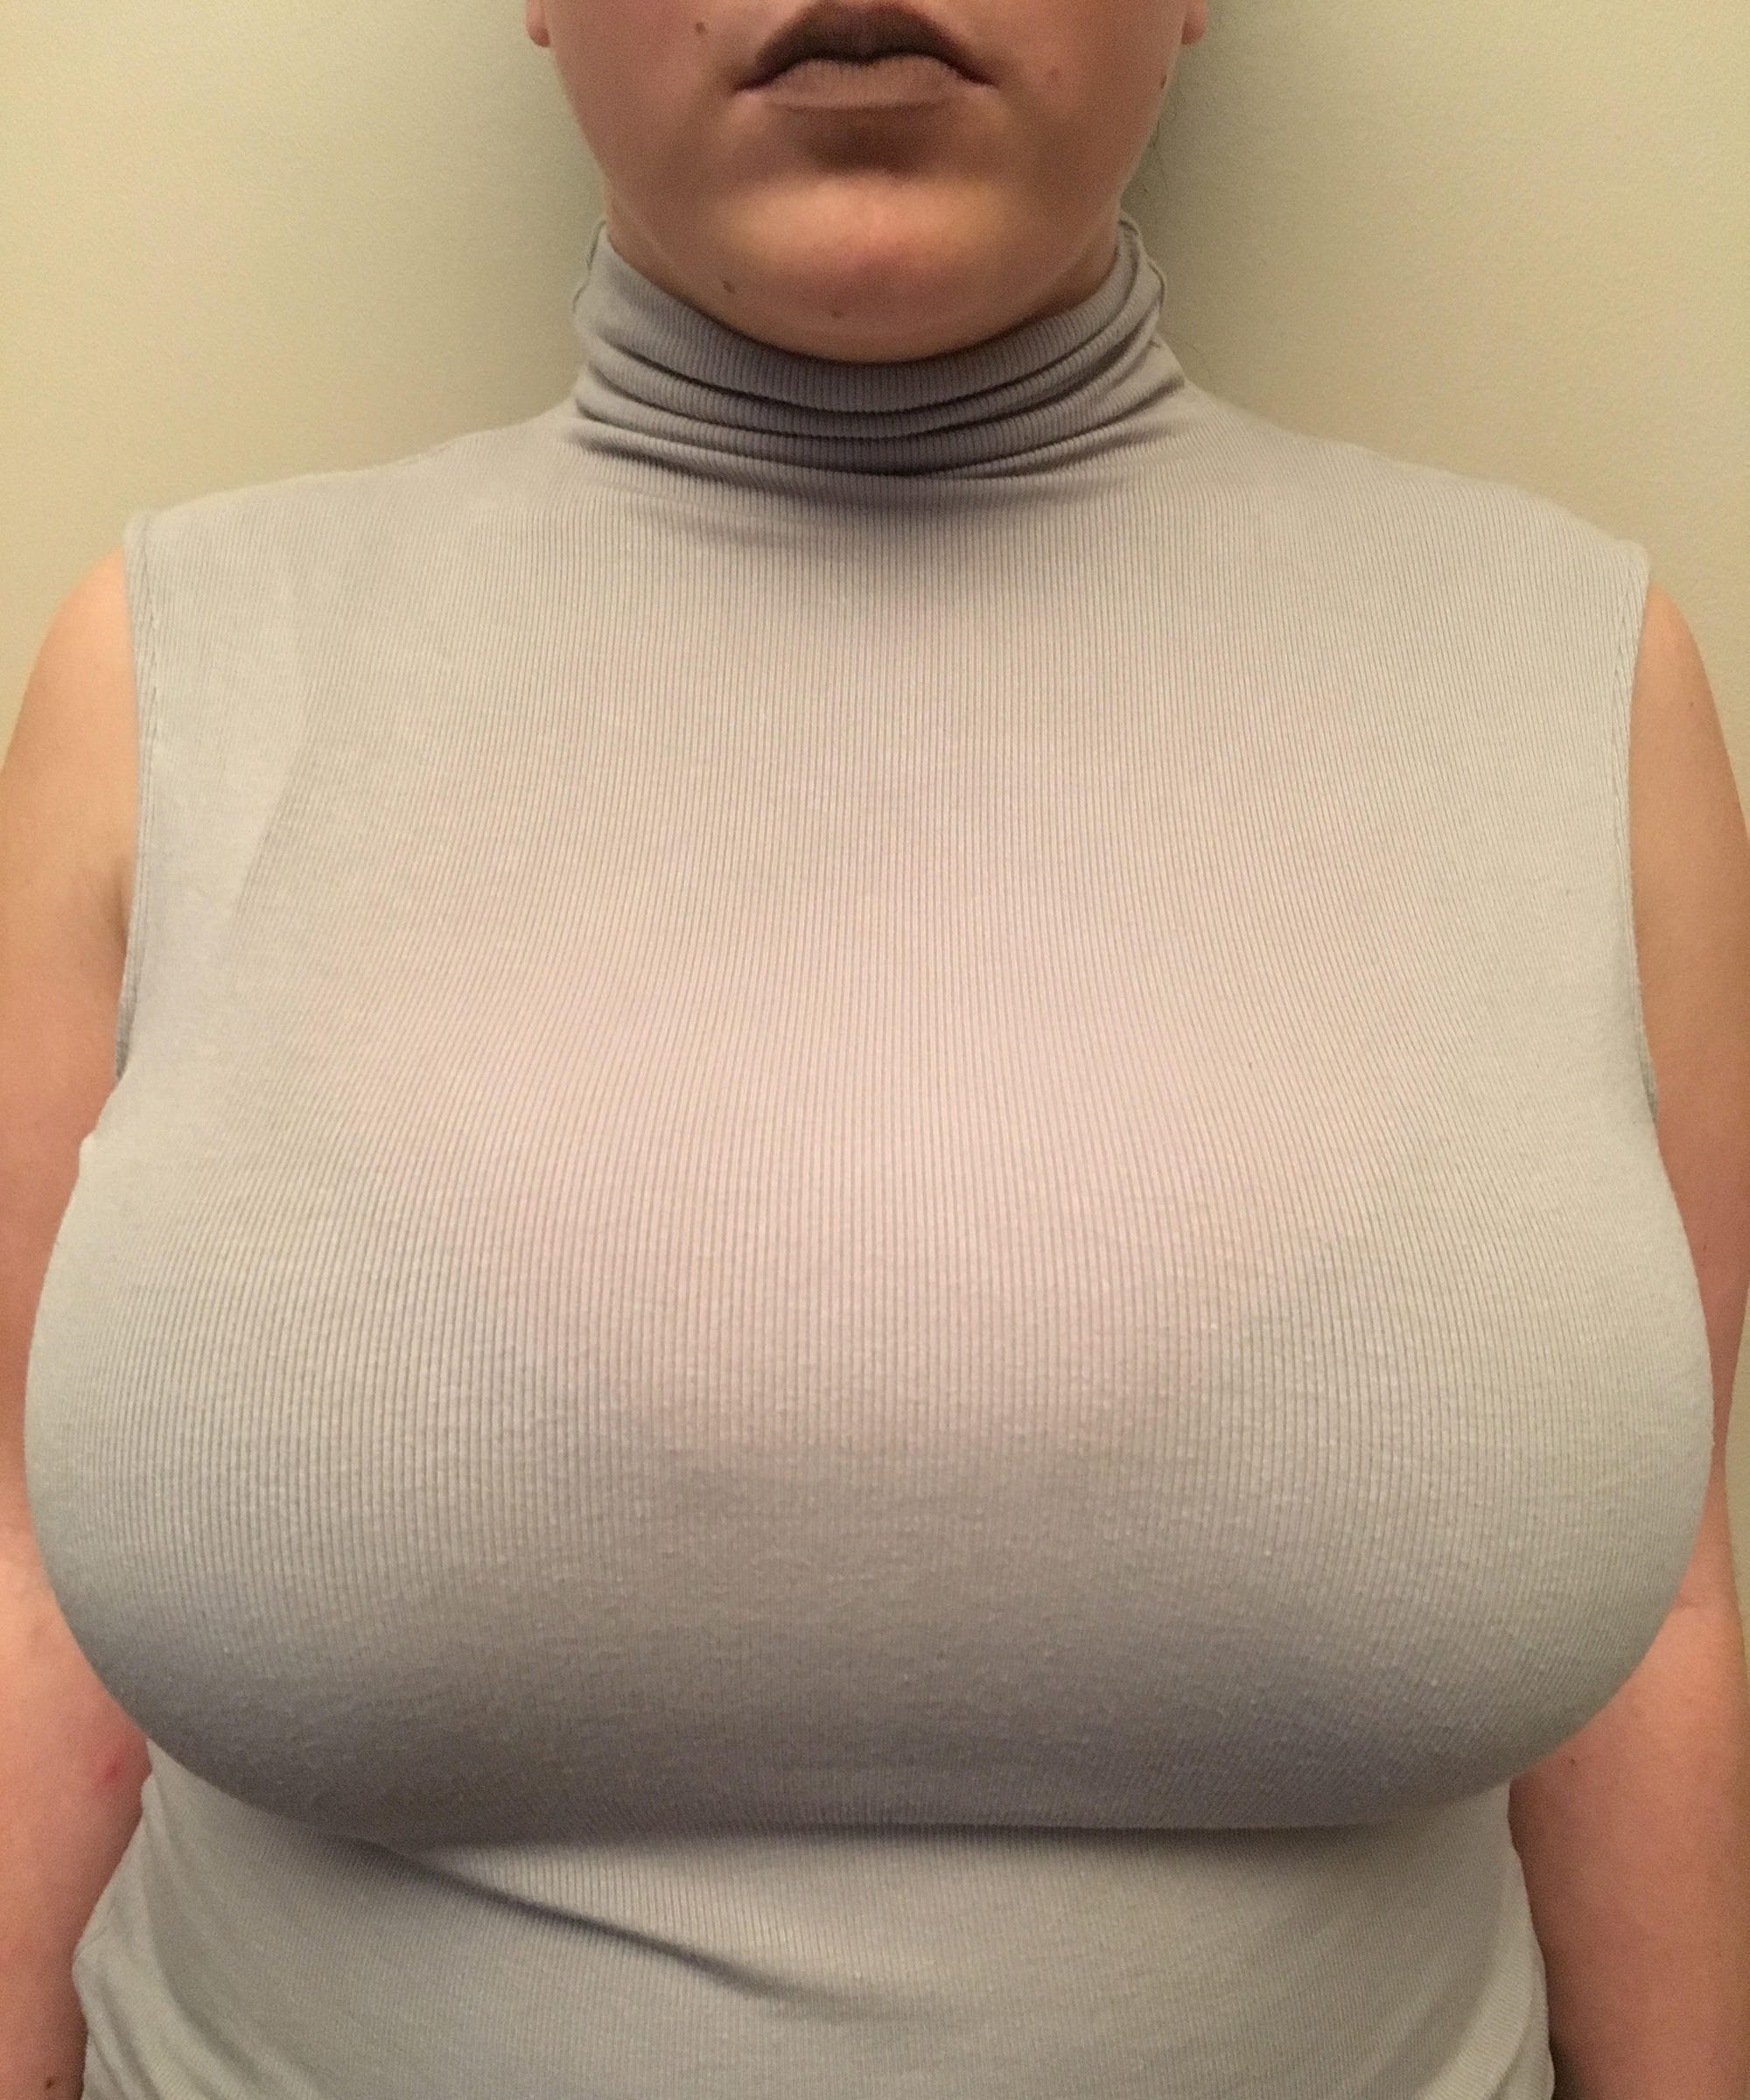 dd24578f235c1 Breast Reduction Before And After Experience Essay